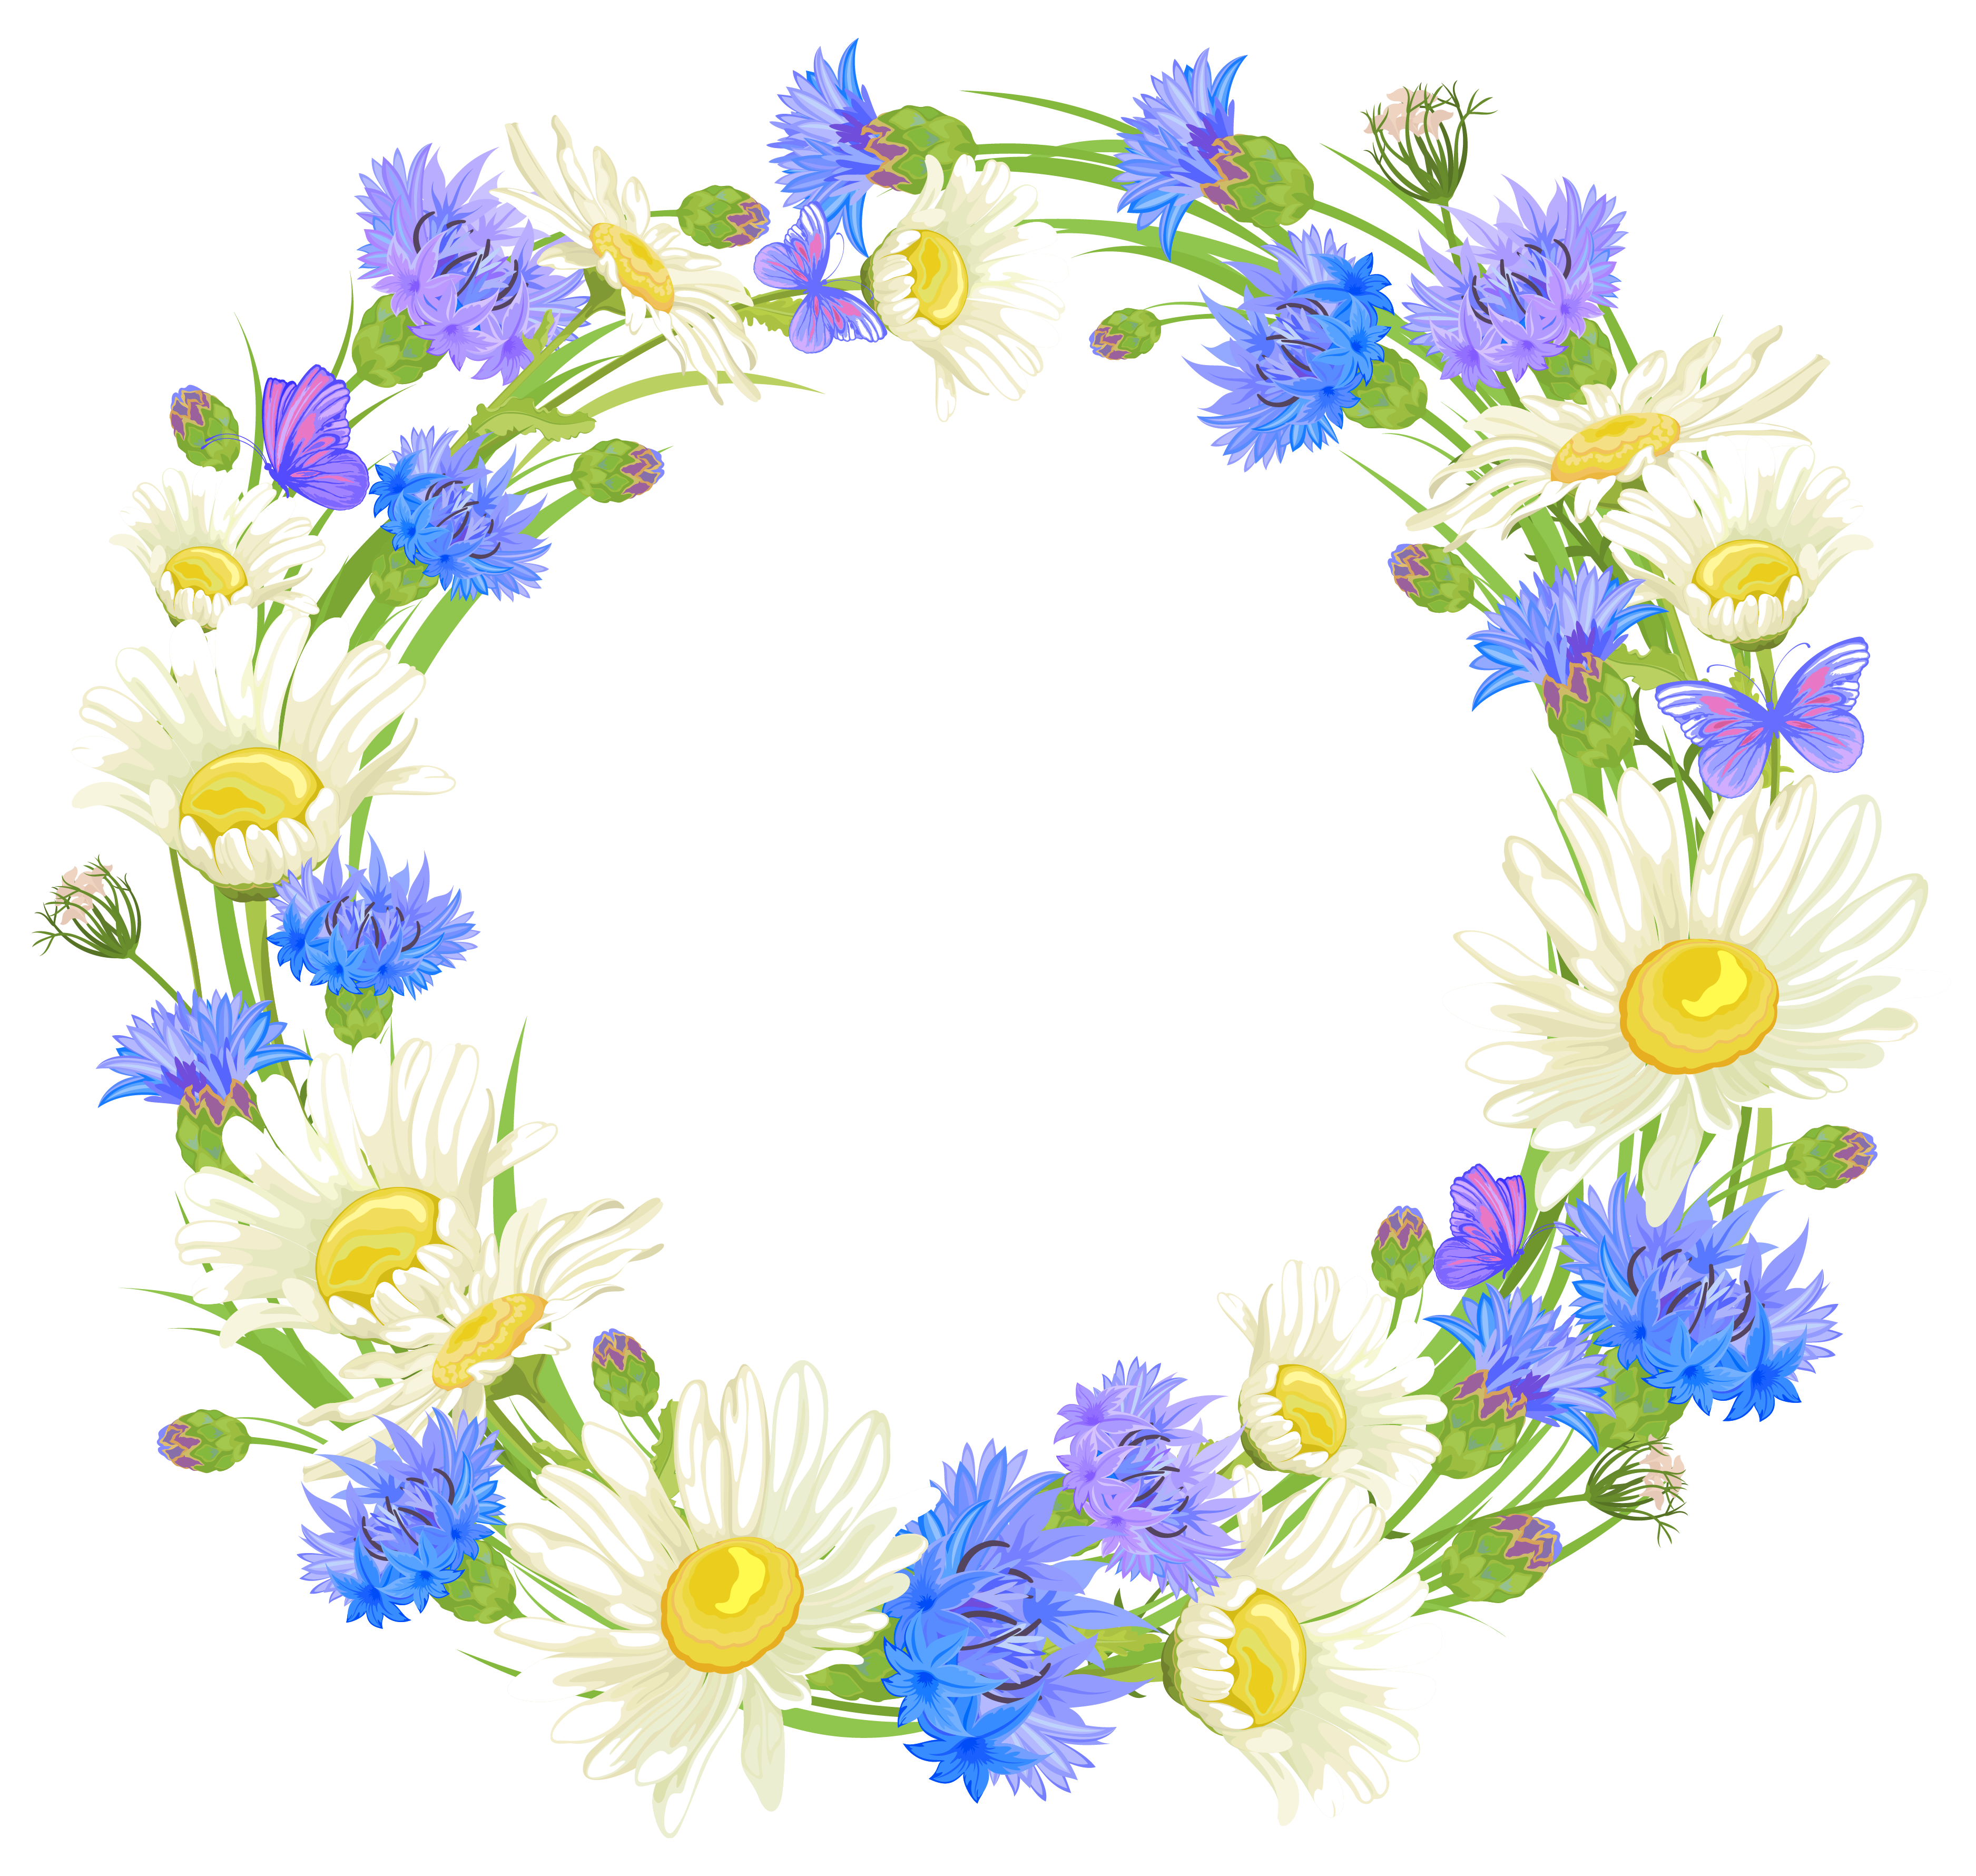 Field flowers clipart gallery. Flower wreath png